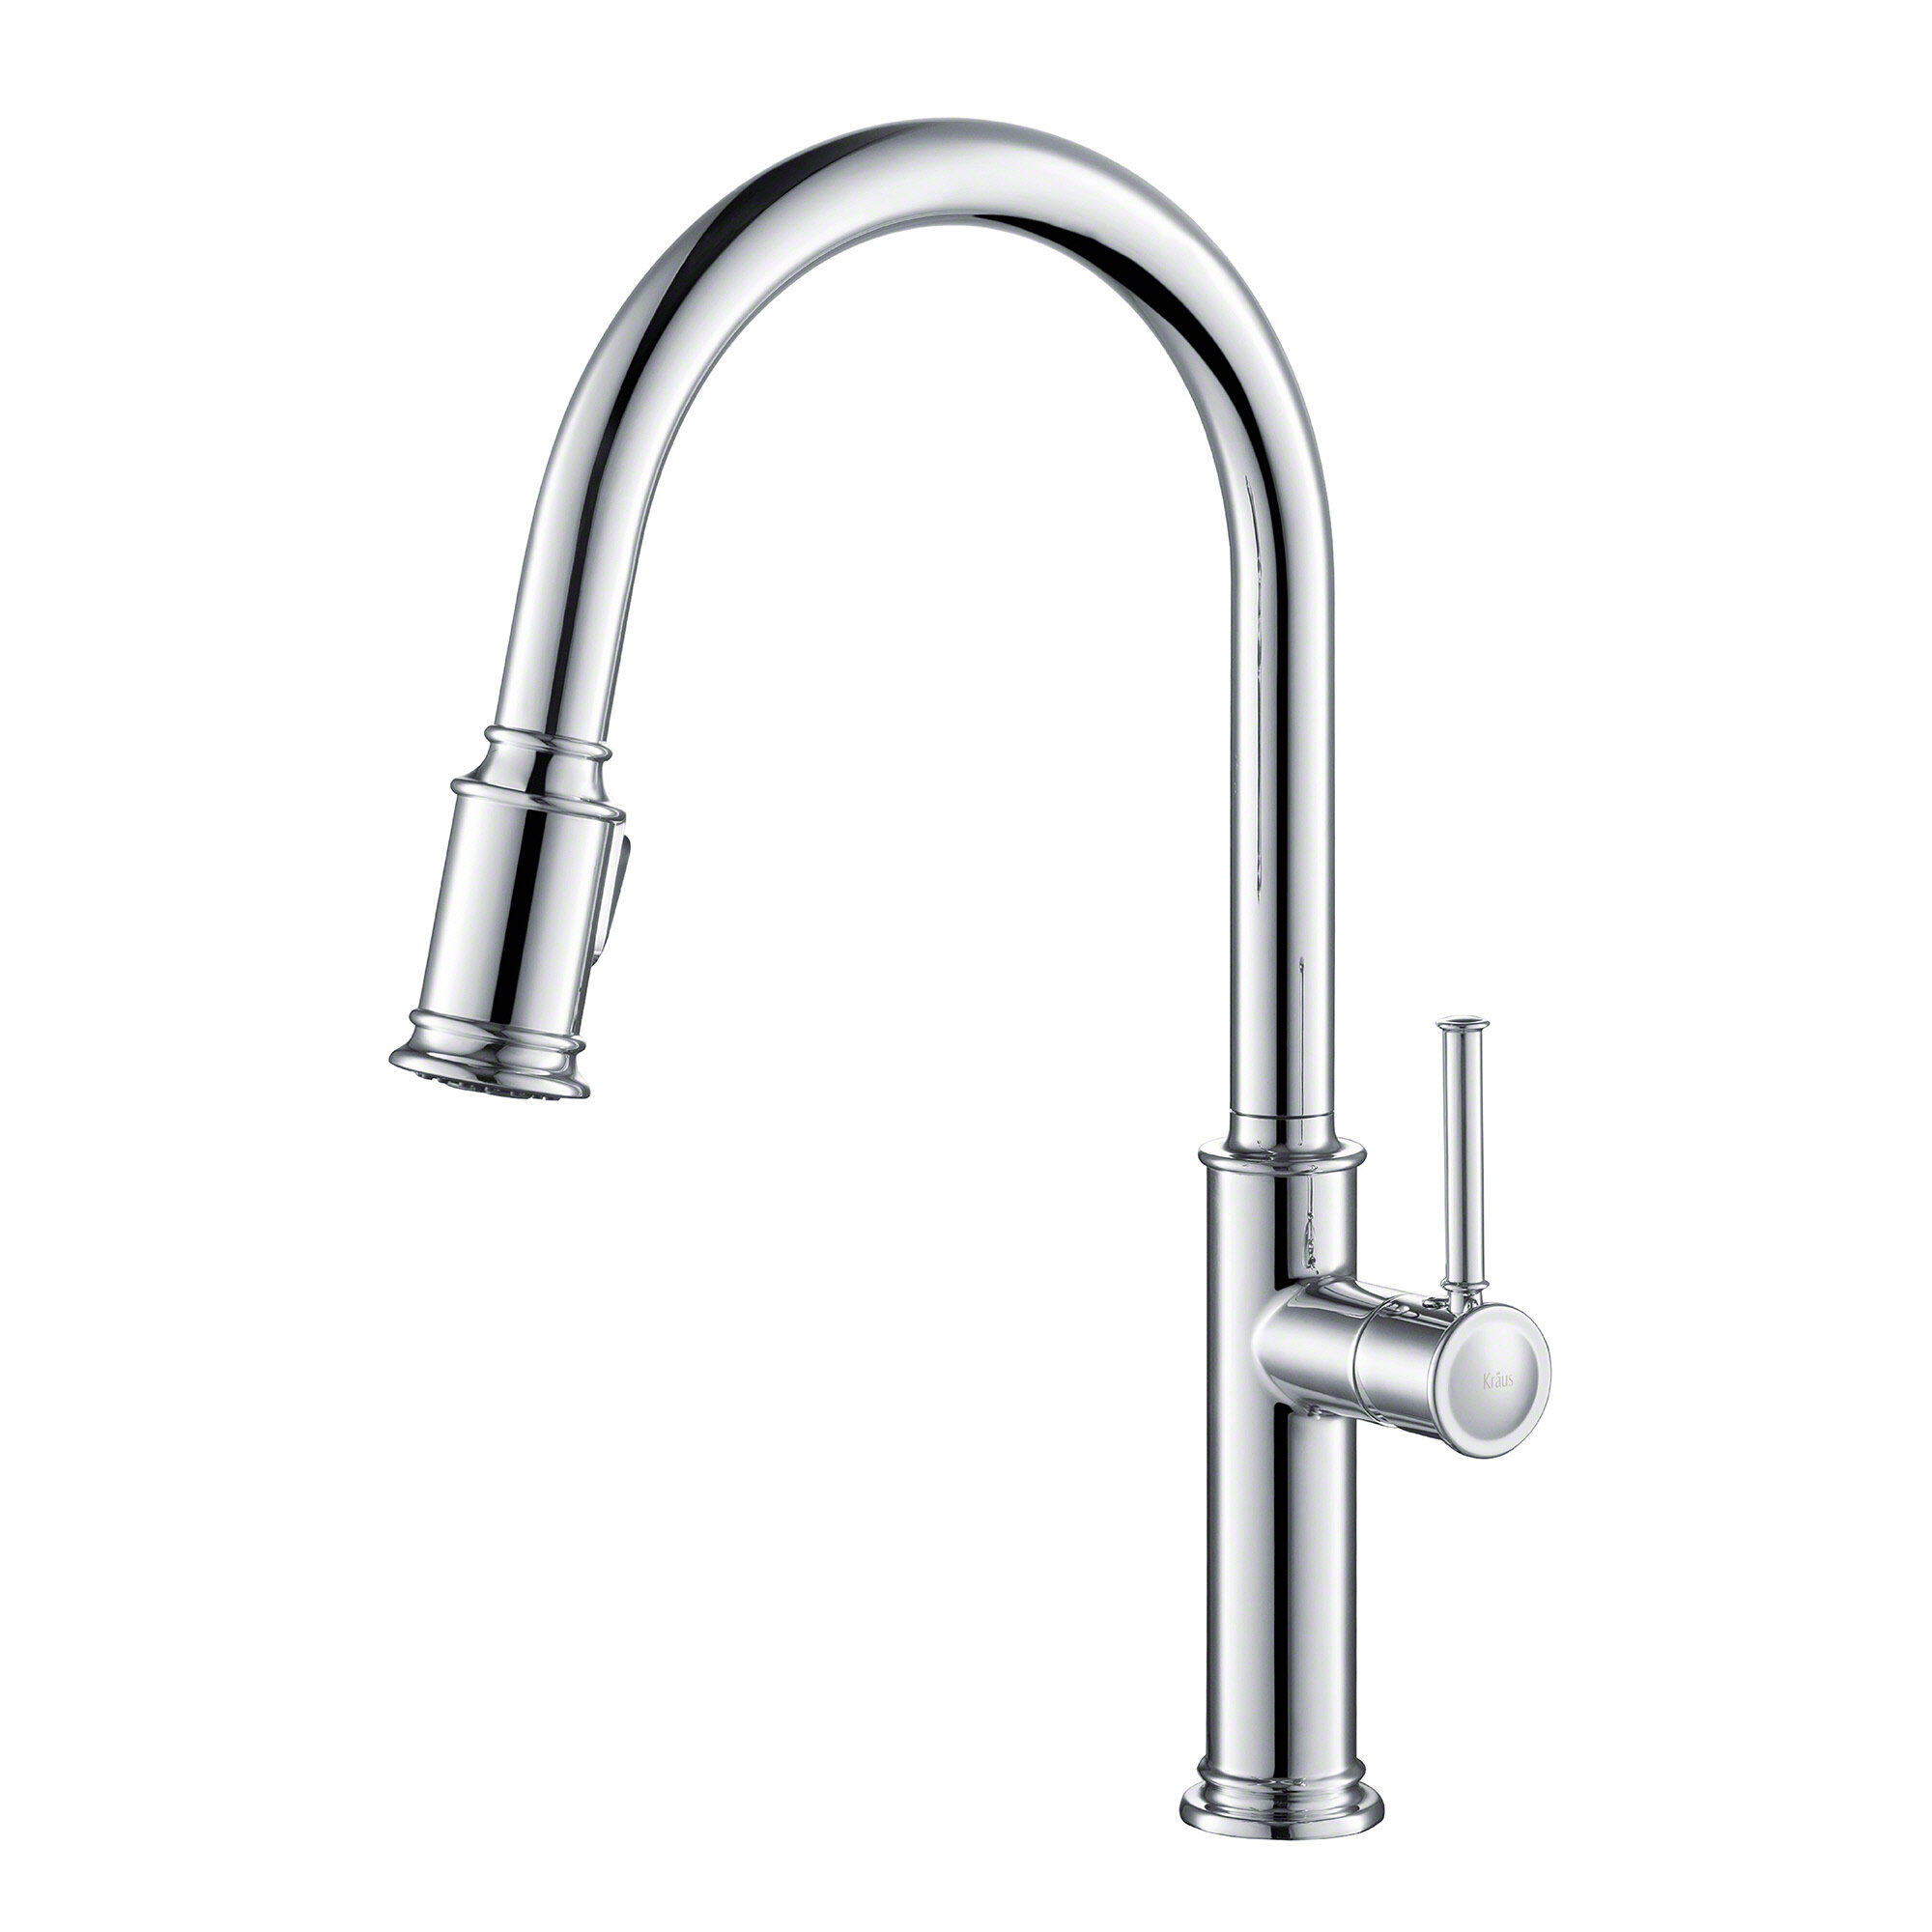 Kraus Sellette Pull Down Single Handle Kitchen Faucet & Reviews ...